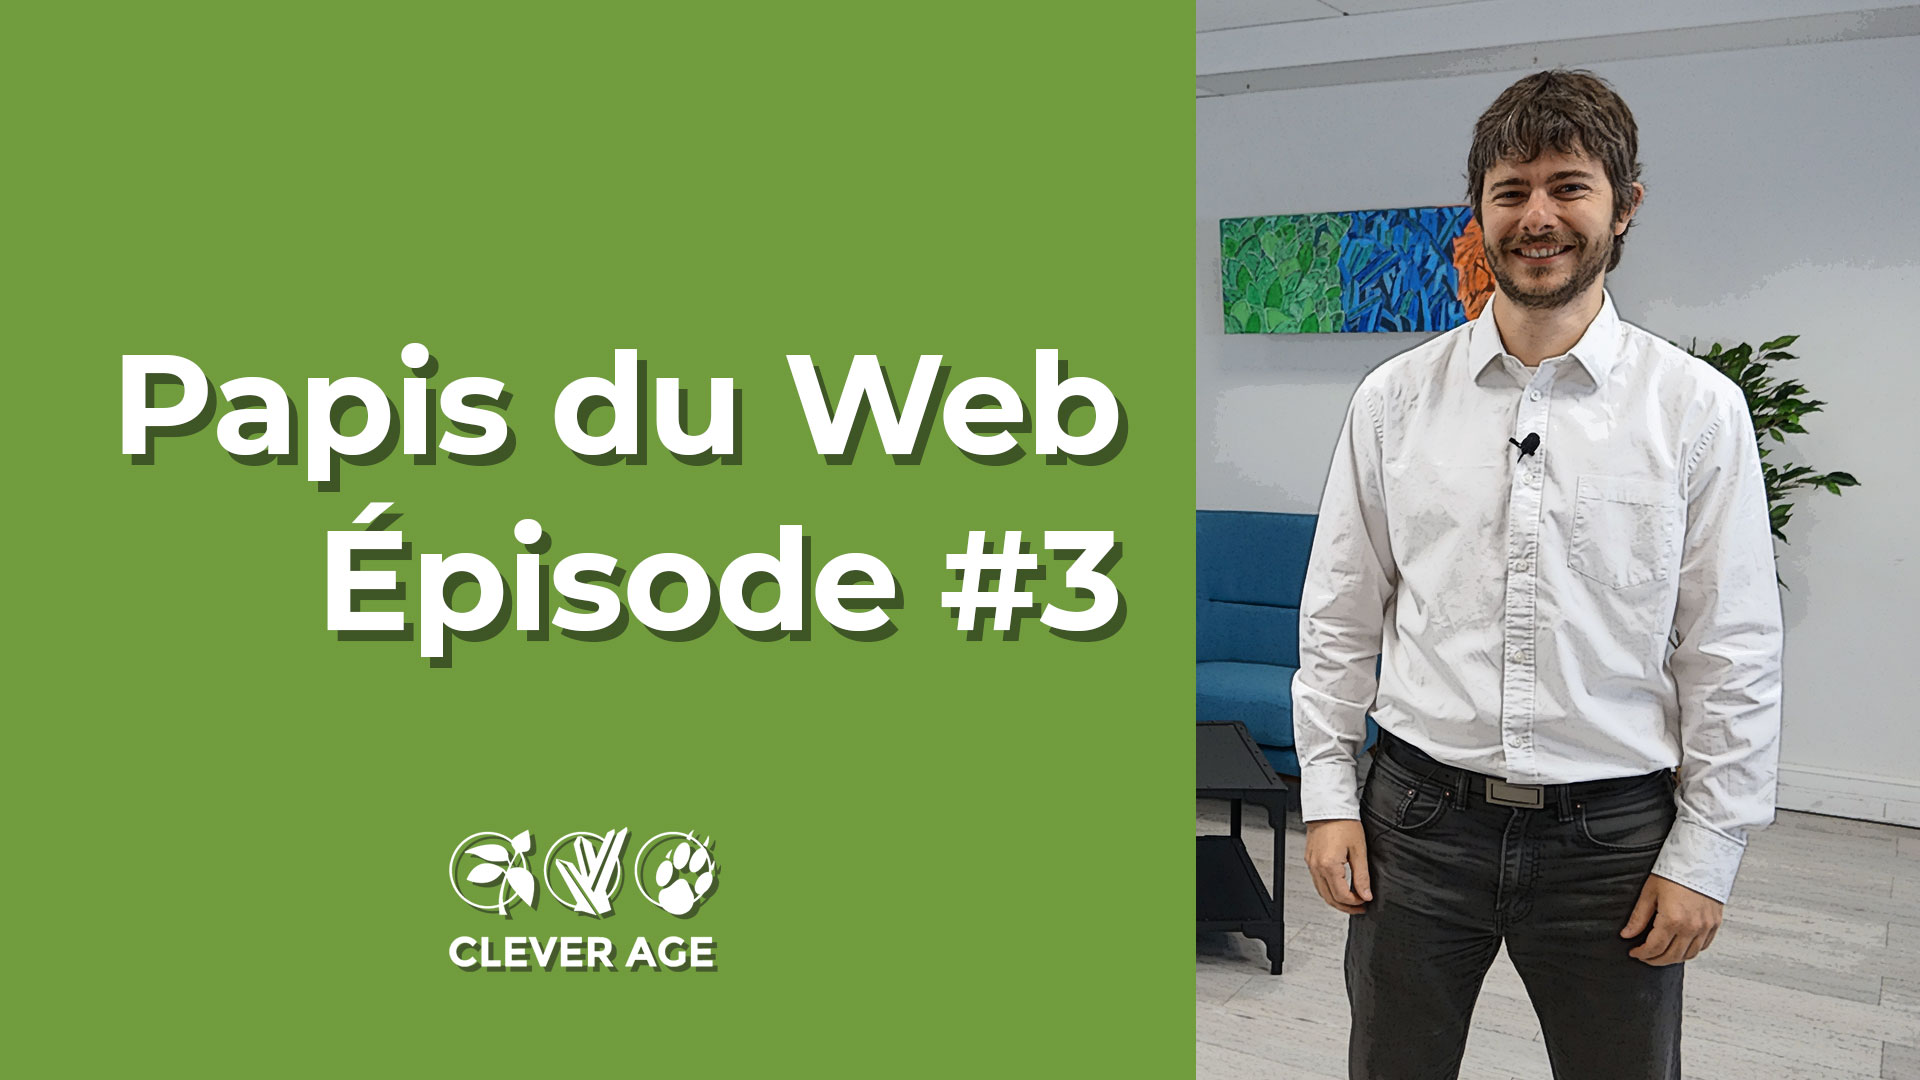 papis du web episode 3